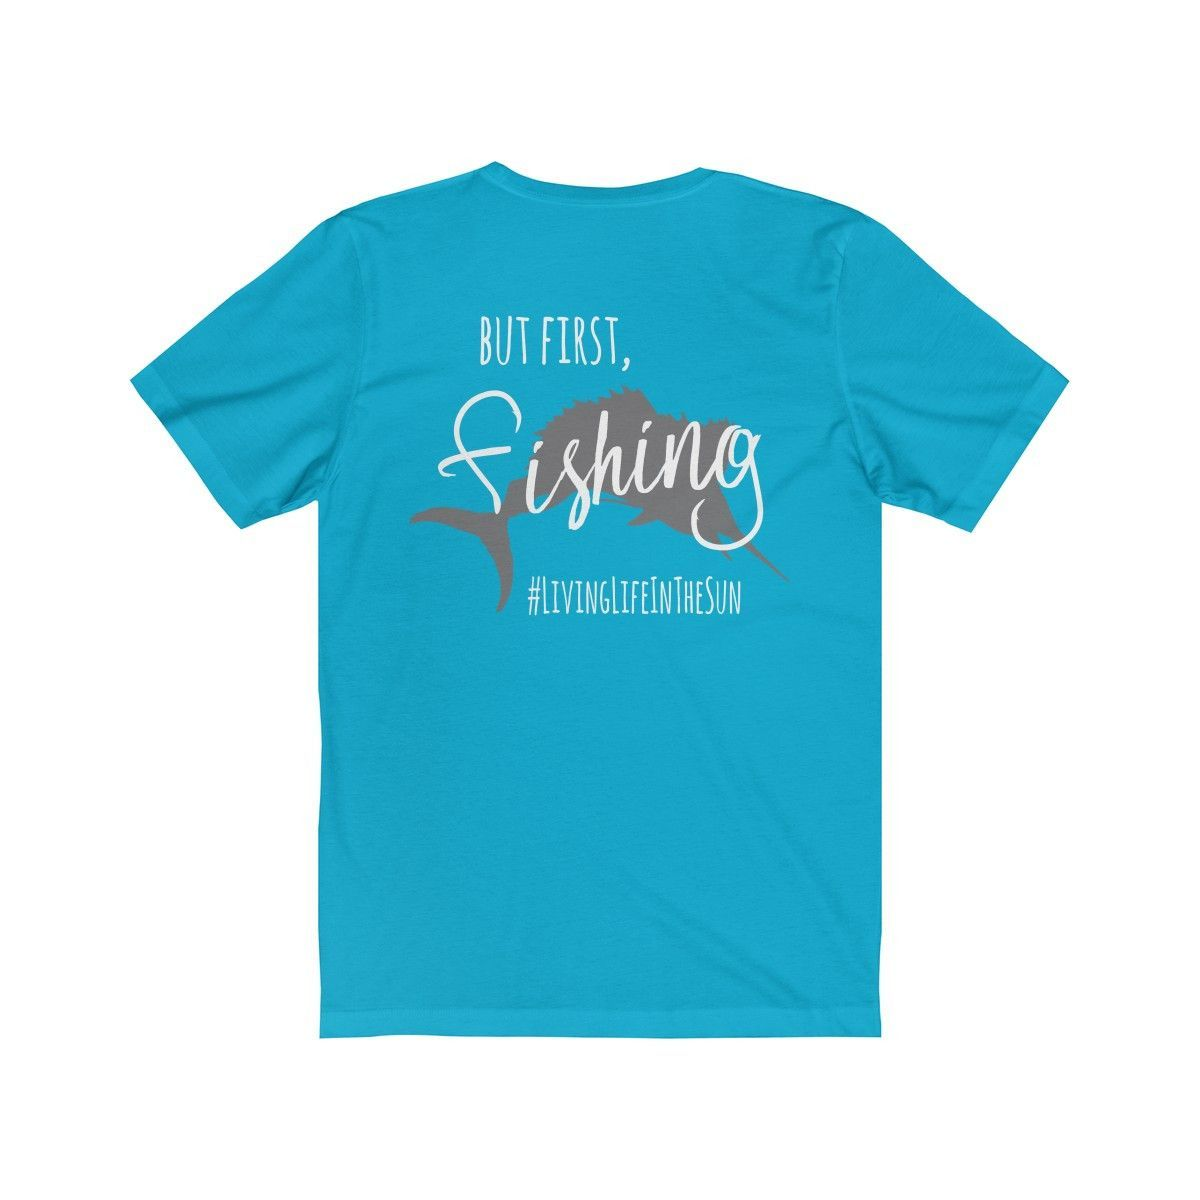 But First, Fishing - Women's Jersey Short Sleeve Tee